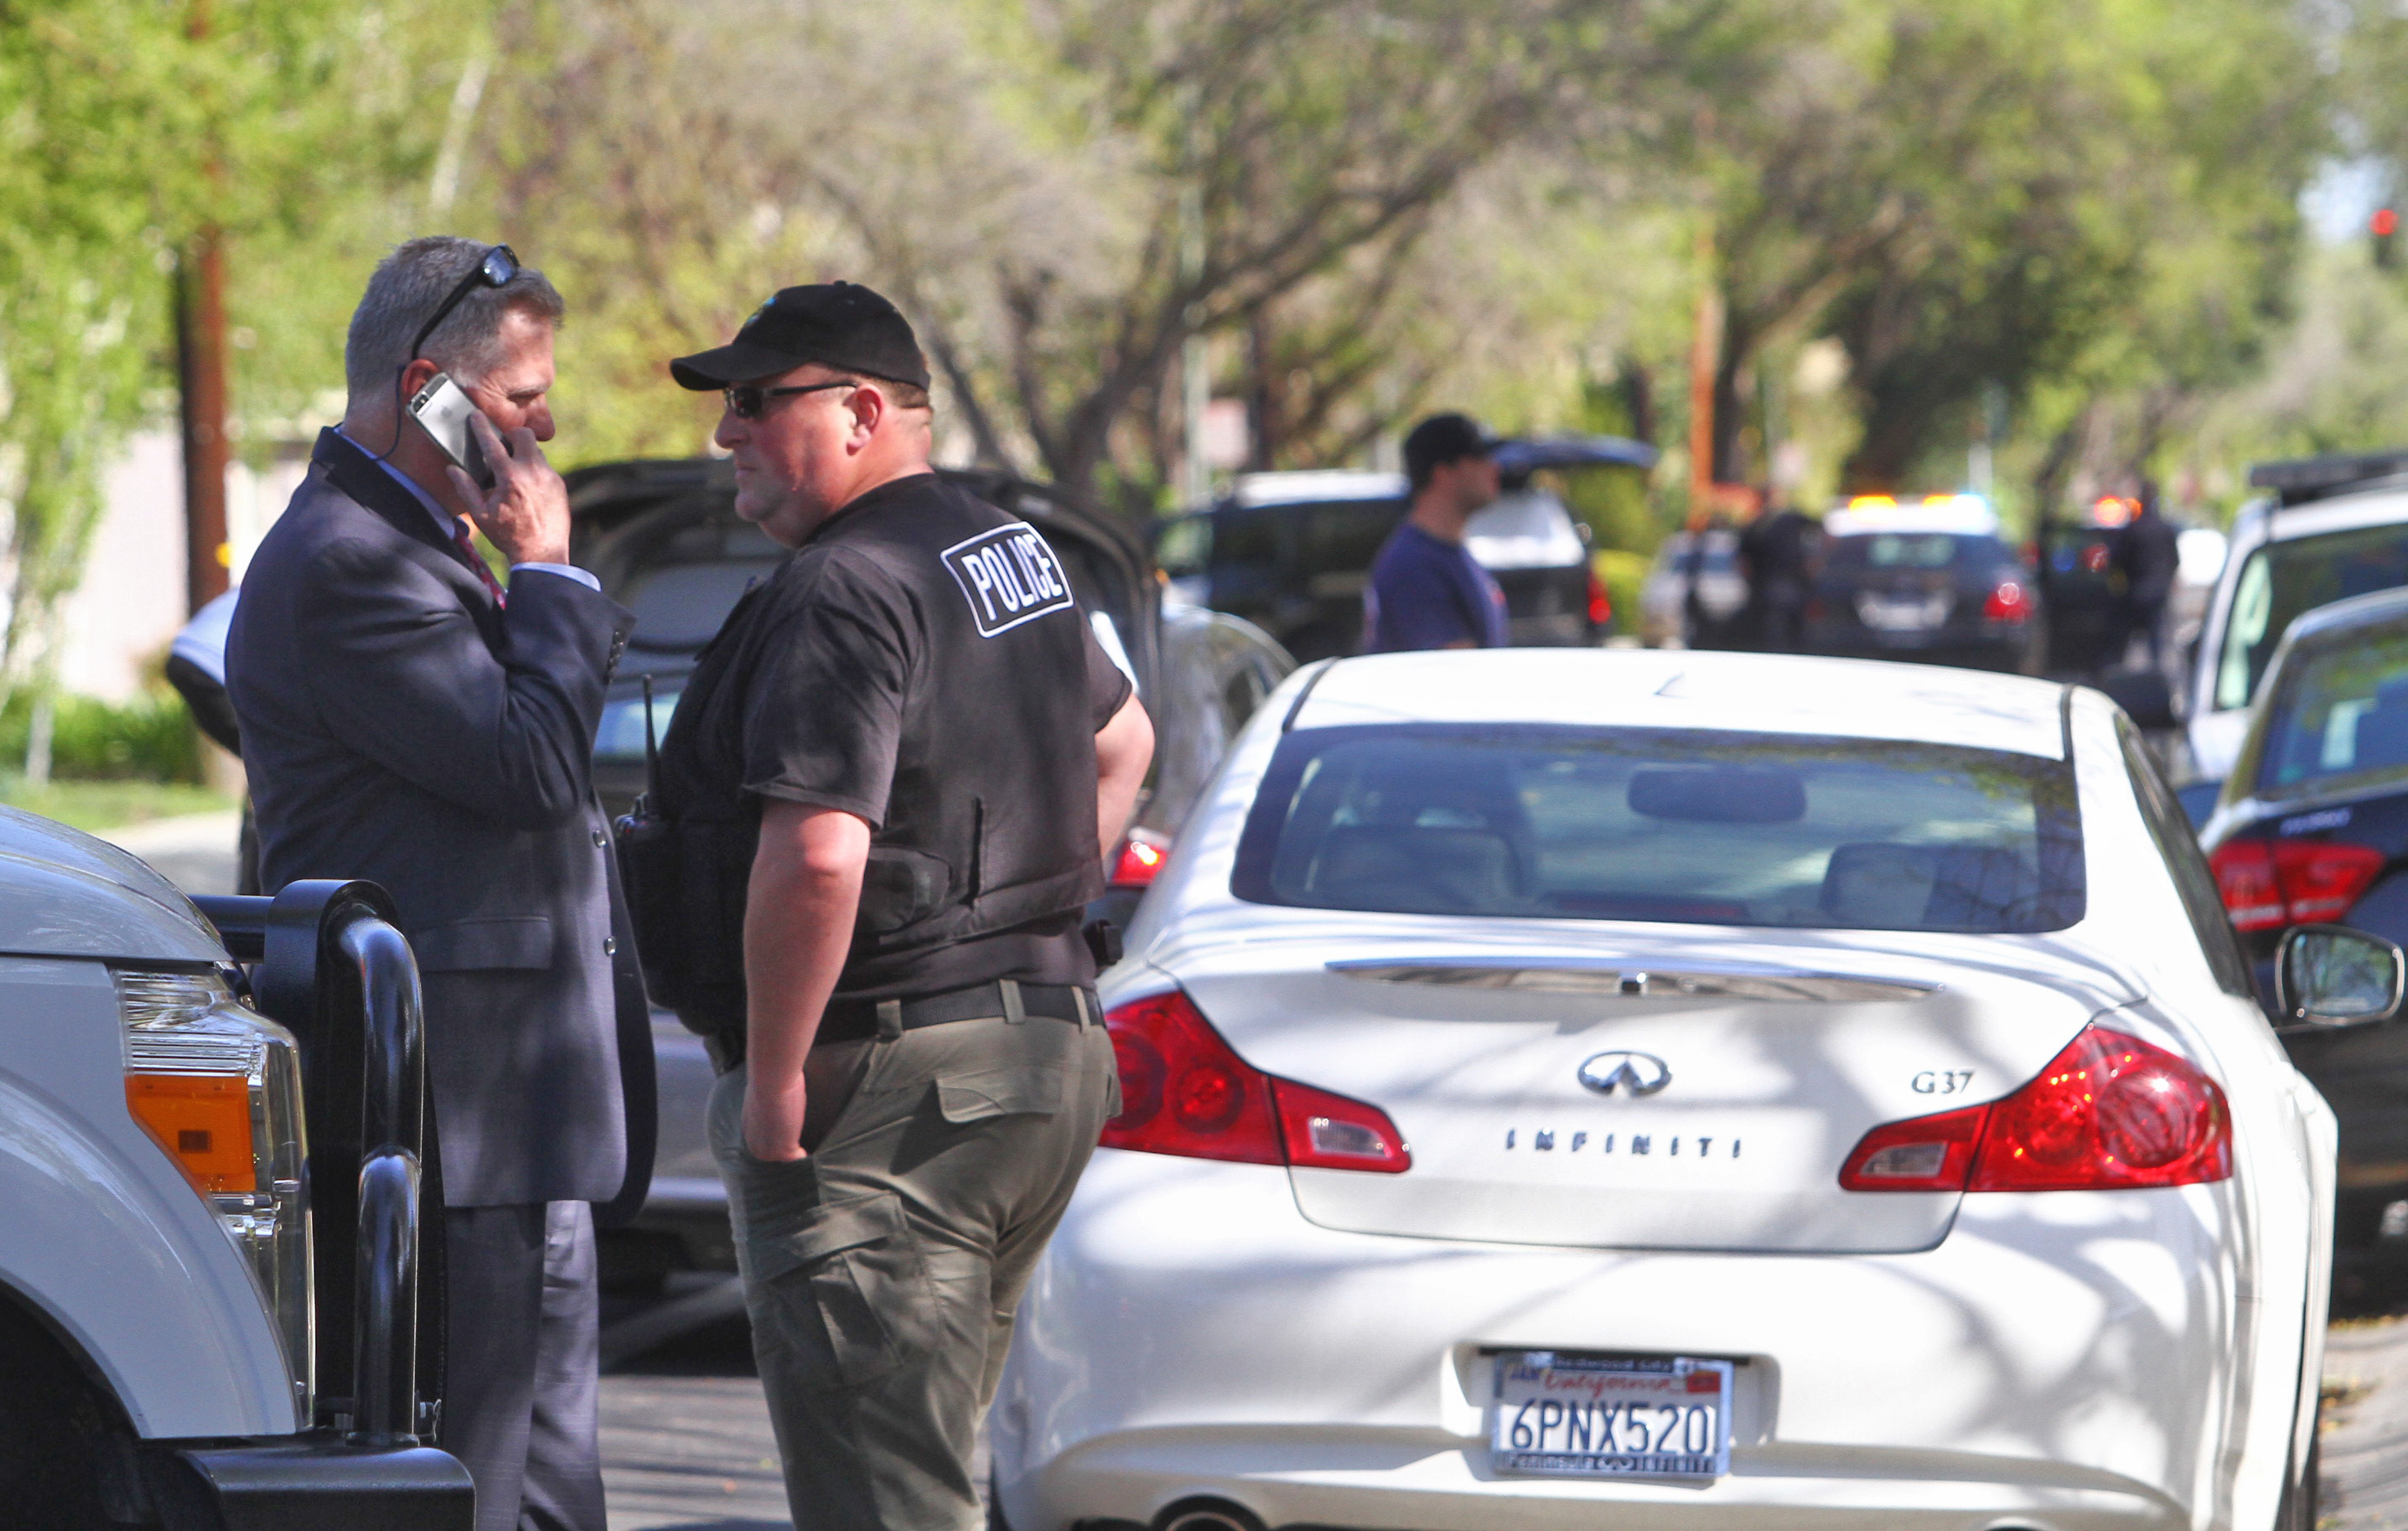 Palo Alto Police Chief Dennis Burns, left, talks with Director of Emergency Services Ken Duekerabout a suspect who has barricaded himself inside a residence on Elsinore Drive on March 23, 2015.  Both the negotiators and SWAT team were used to extract the man, who was takeninto custody.  Photo by Veronica Weber/Palo Alto Weekly.